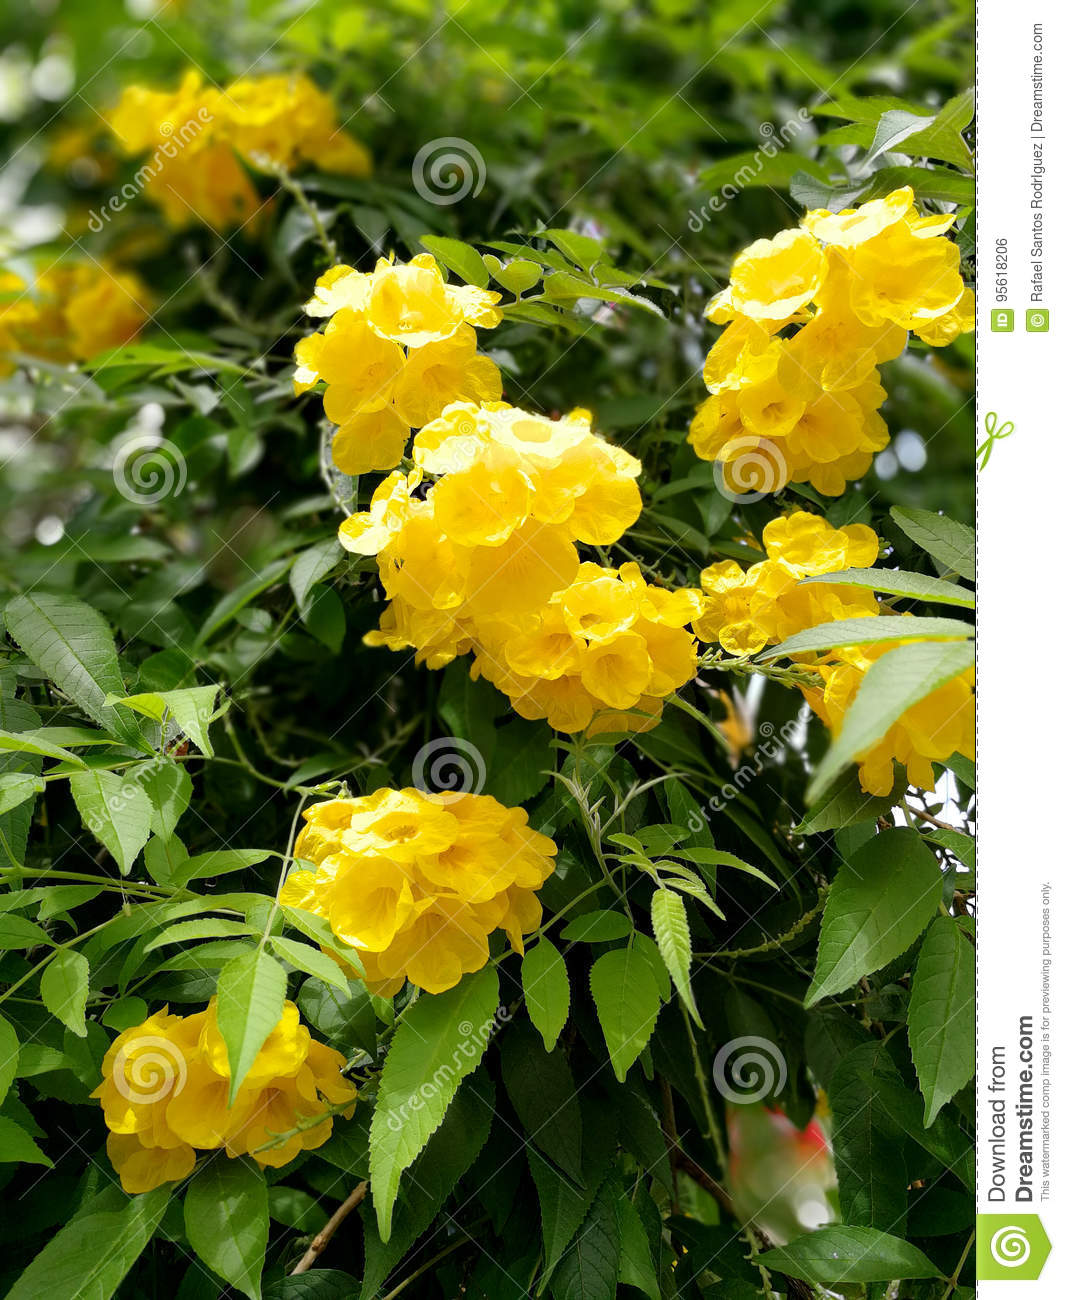 Yellow Elder Flower Bush Stock Photo Image Of Summer 95618206